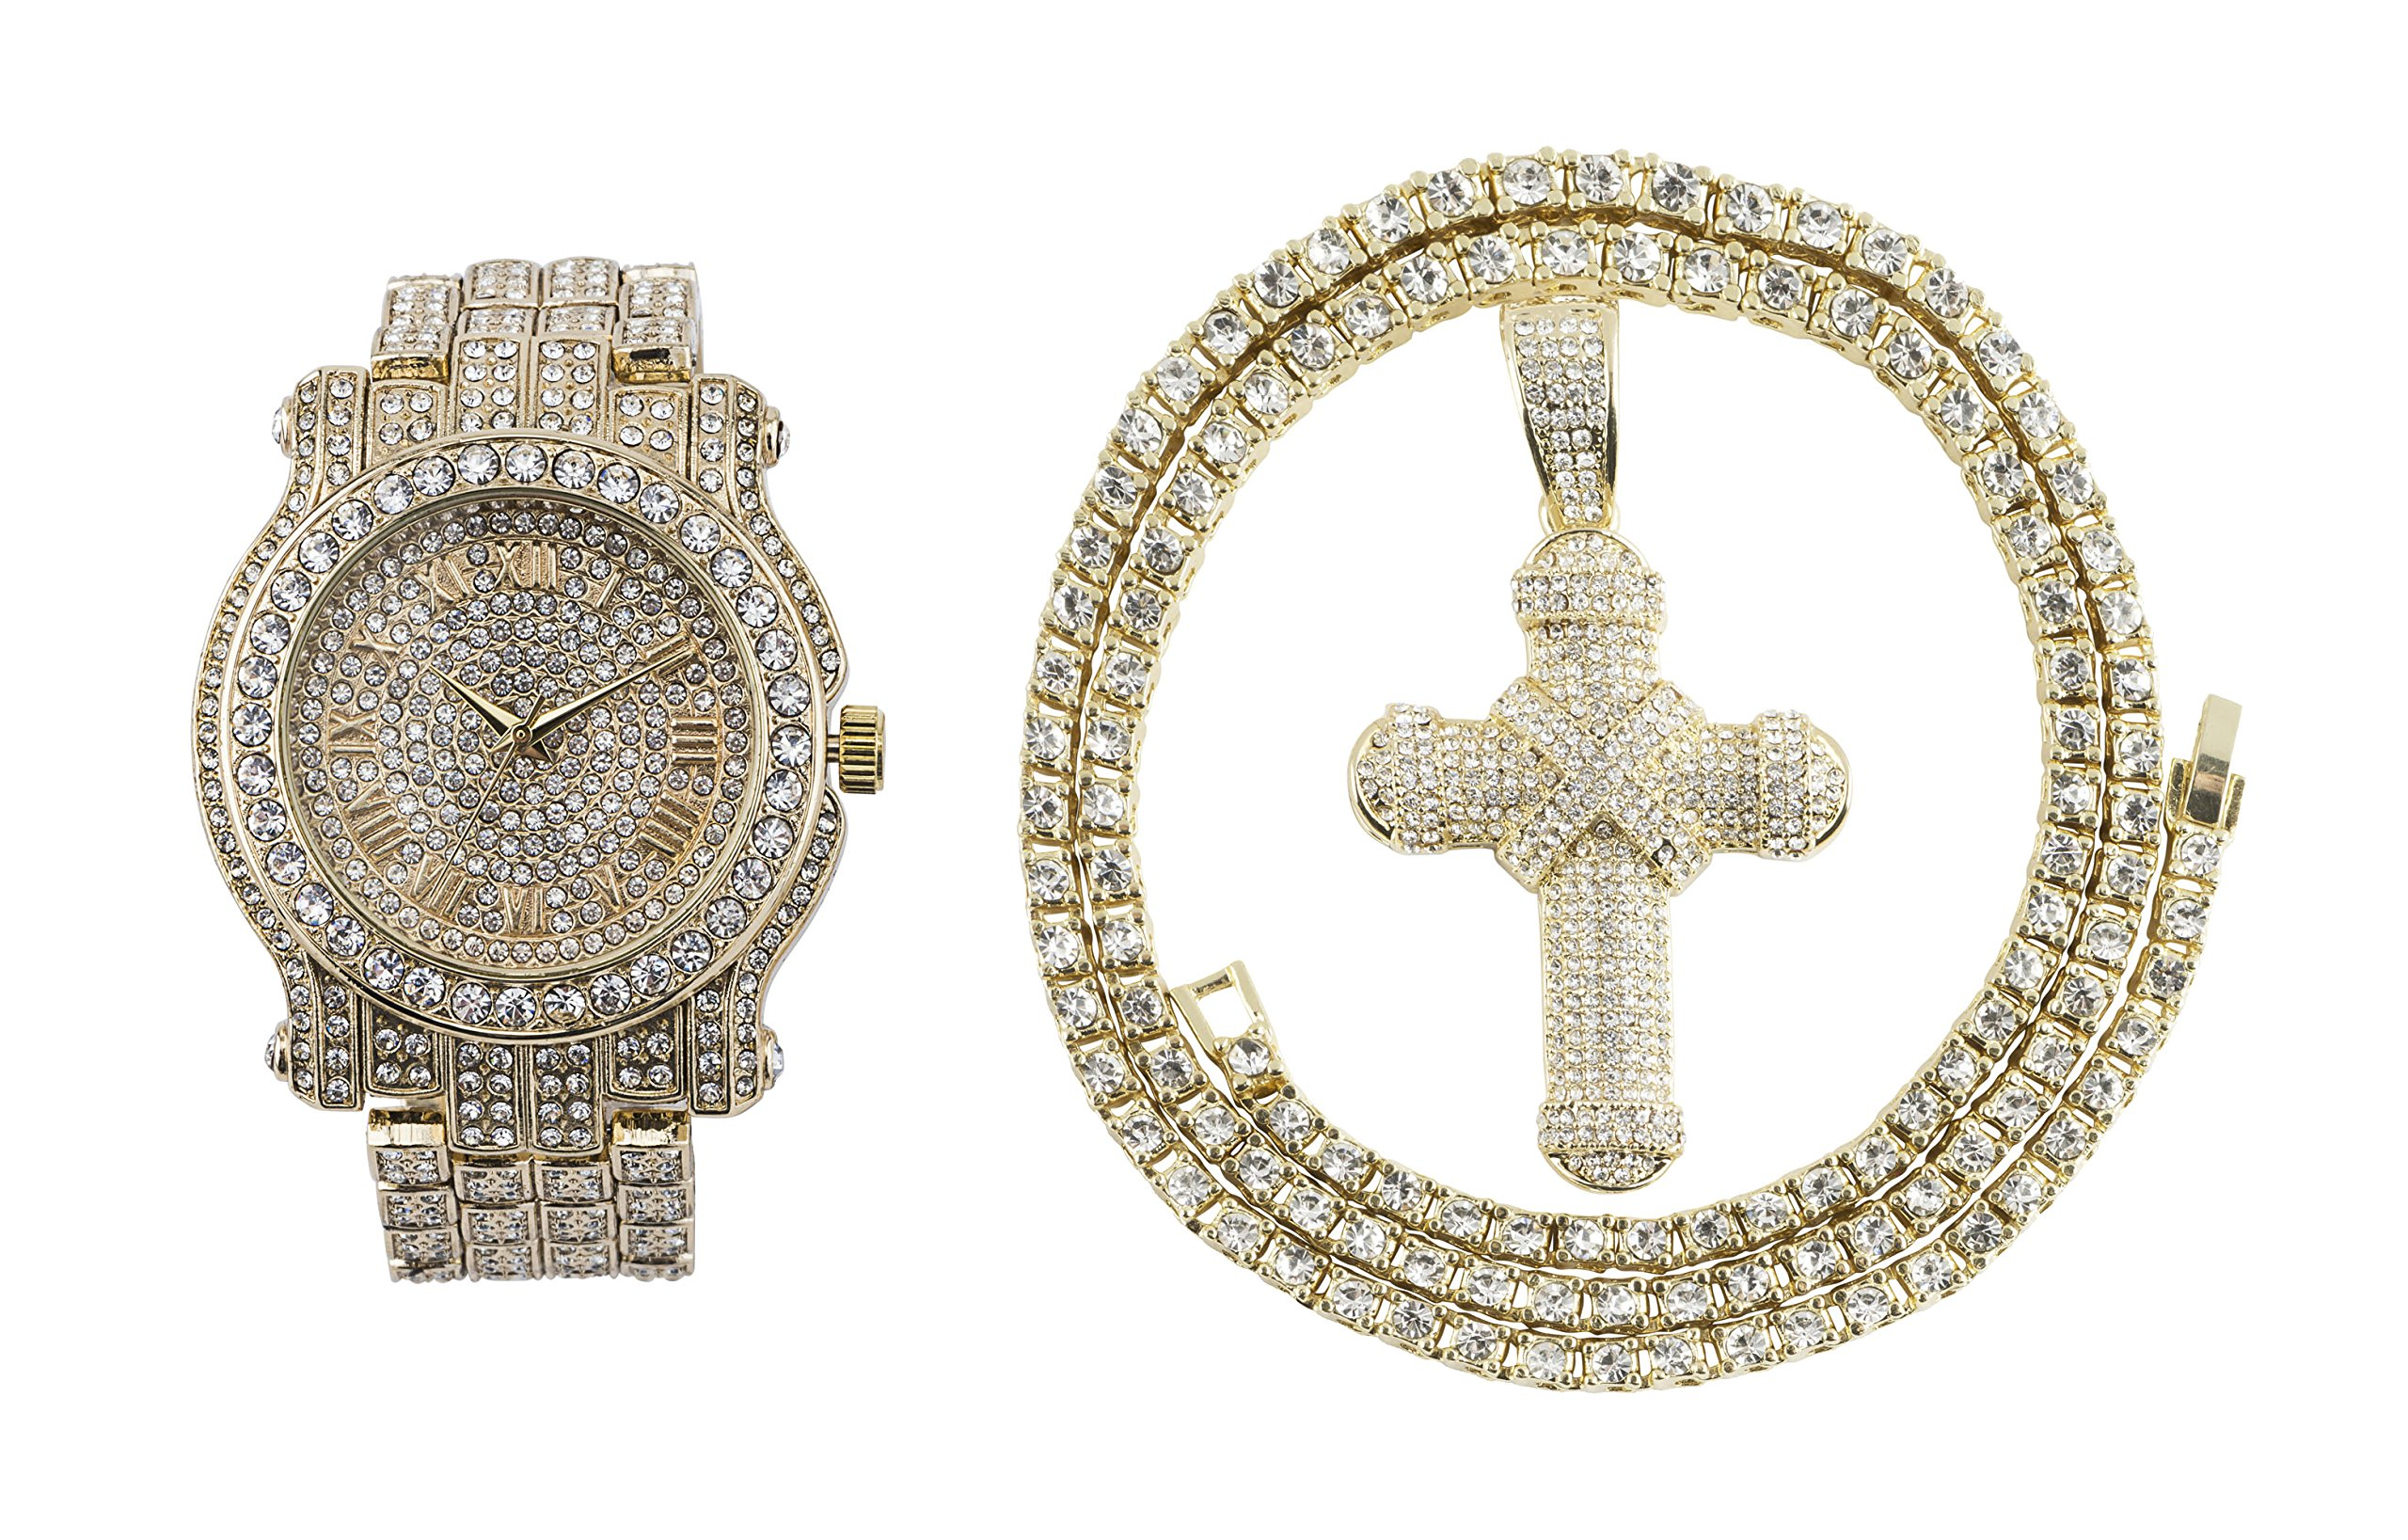 Iced Out Metal Band Bling Watch & Cross Pendant with Matching 24 inch One Row Tennis Necklace Gift Set (Gold)